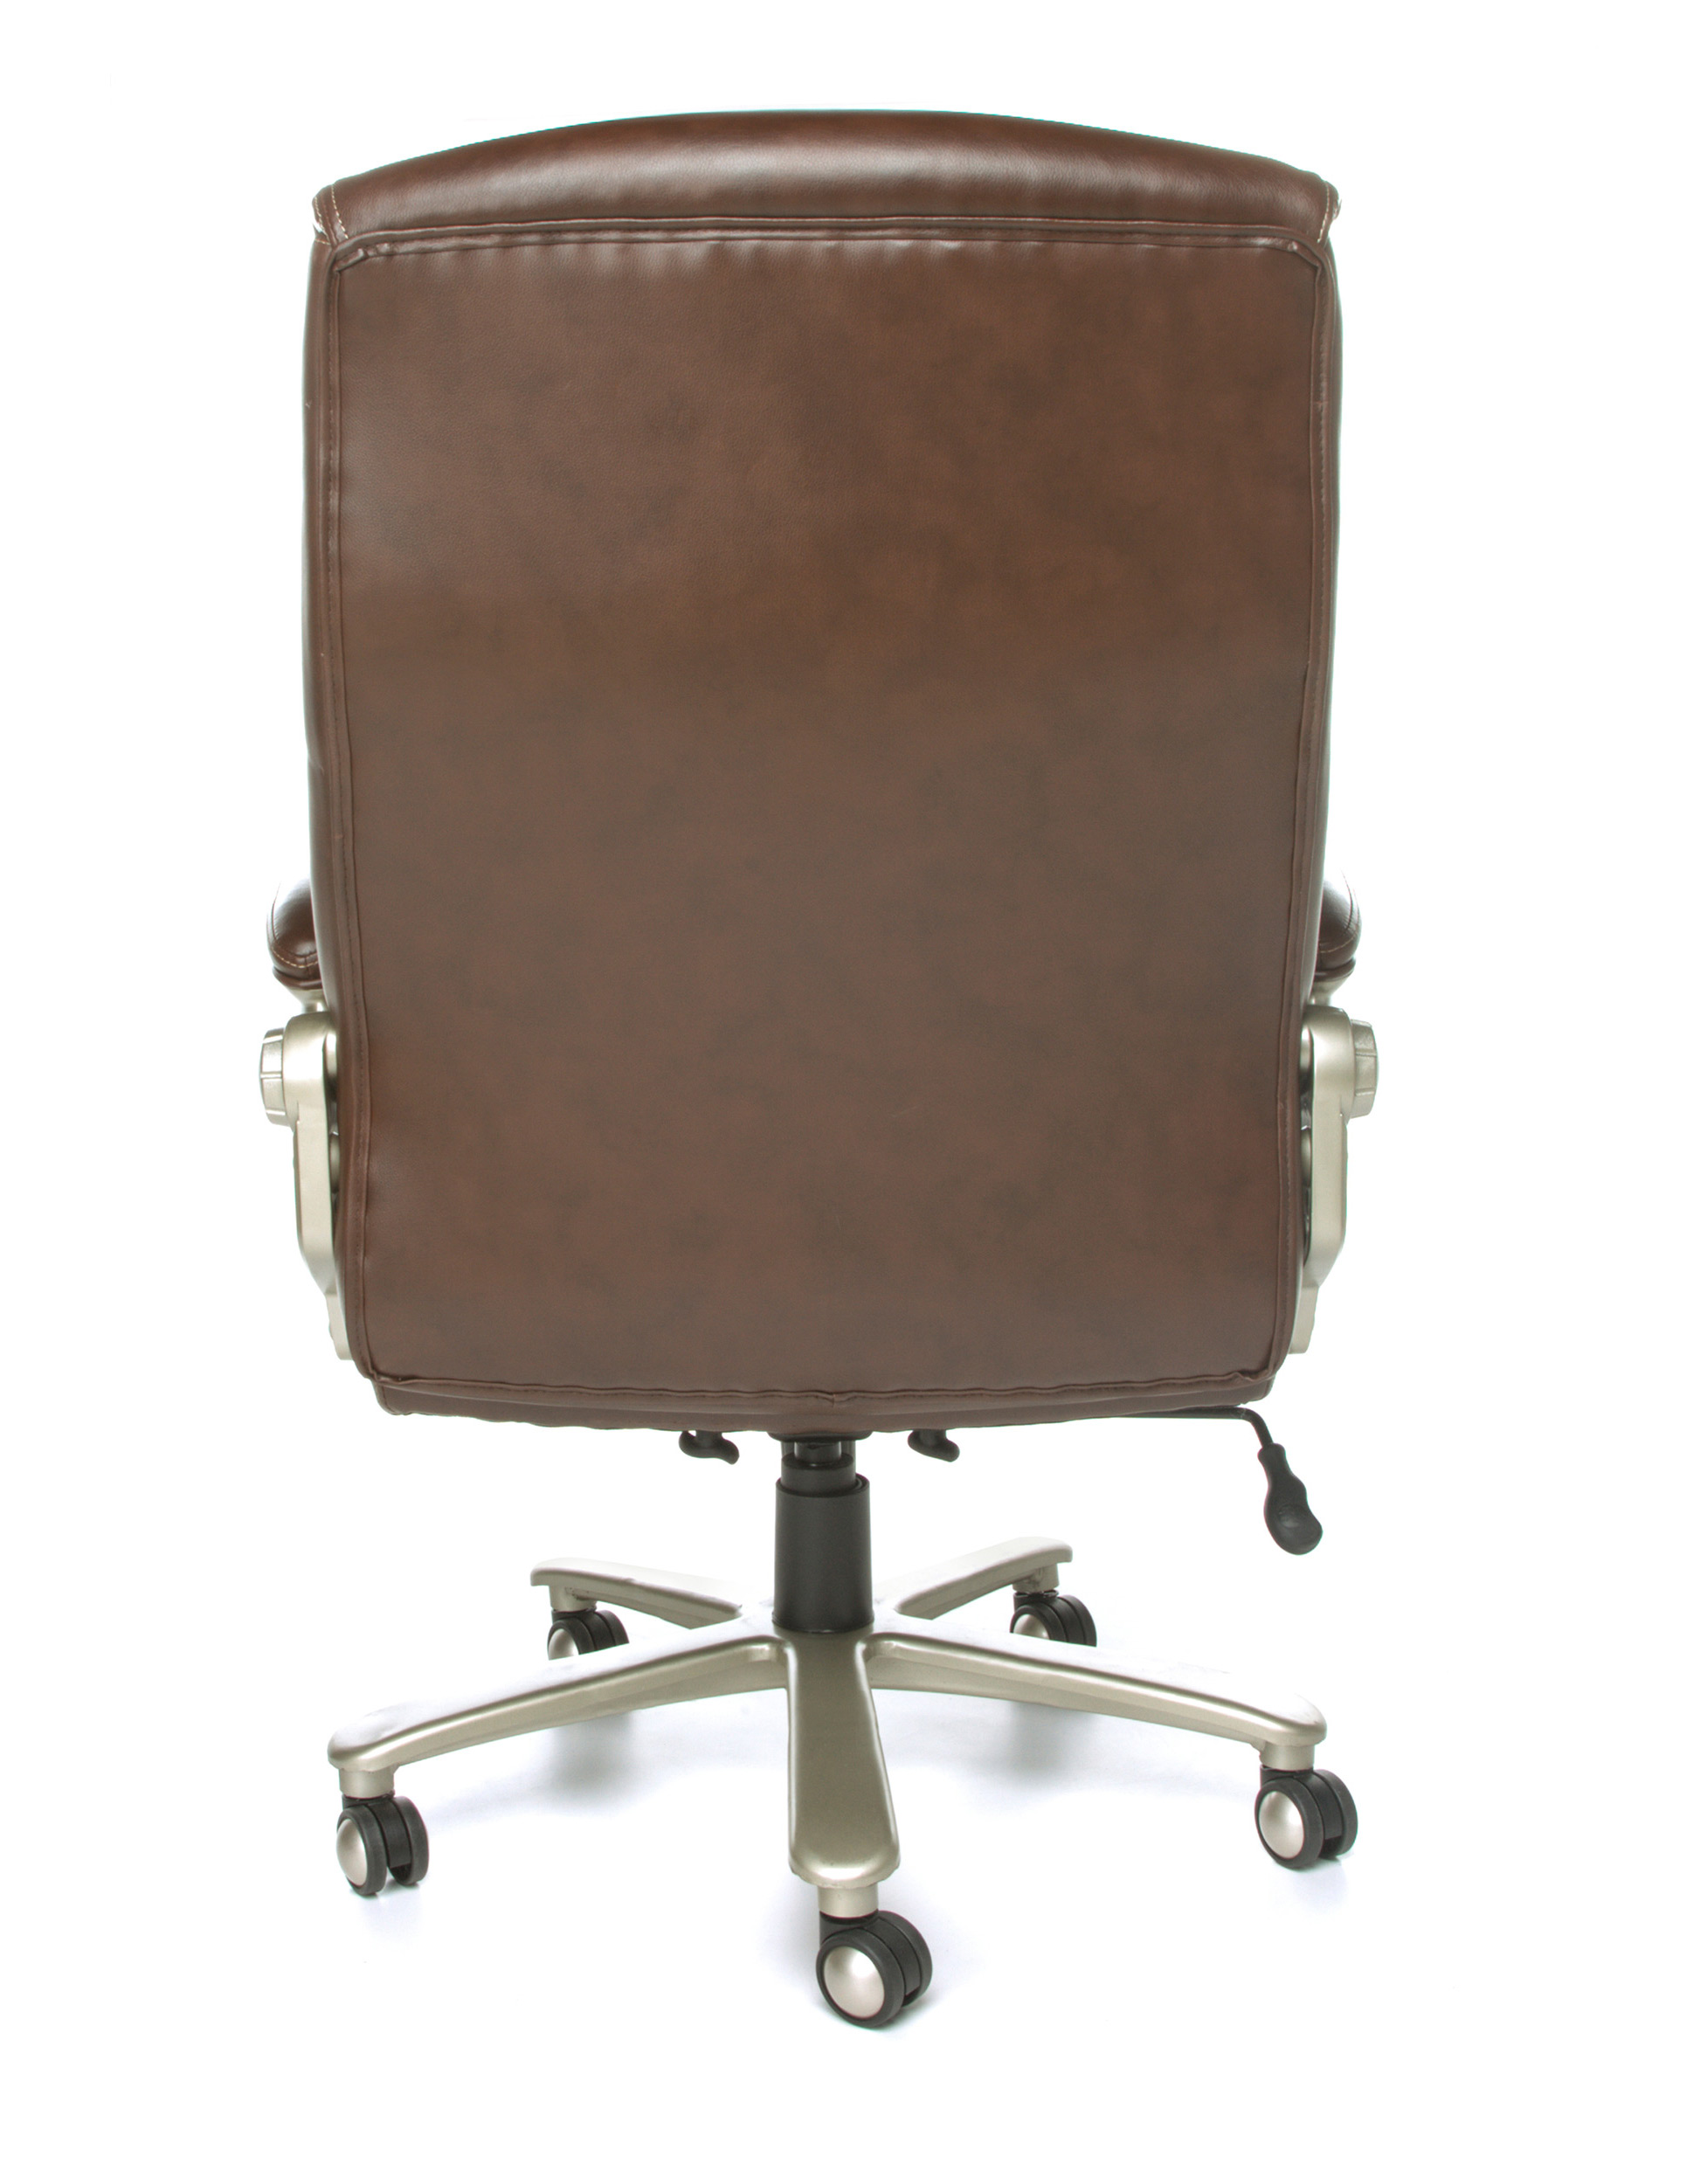 Heavy duty executive chair rear view